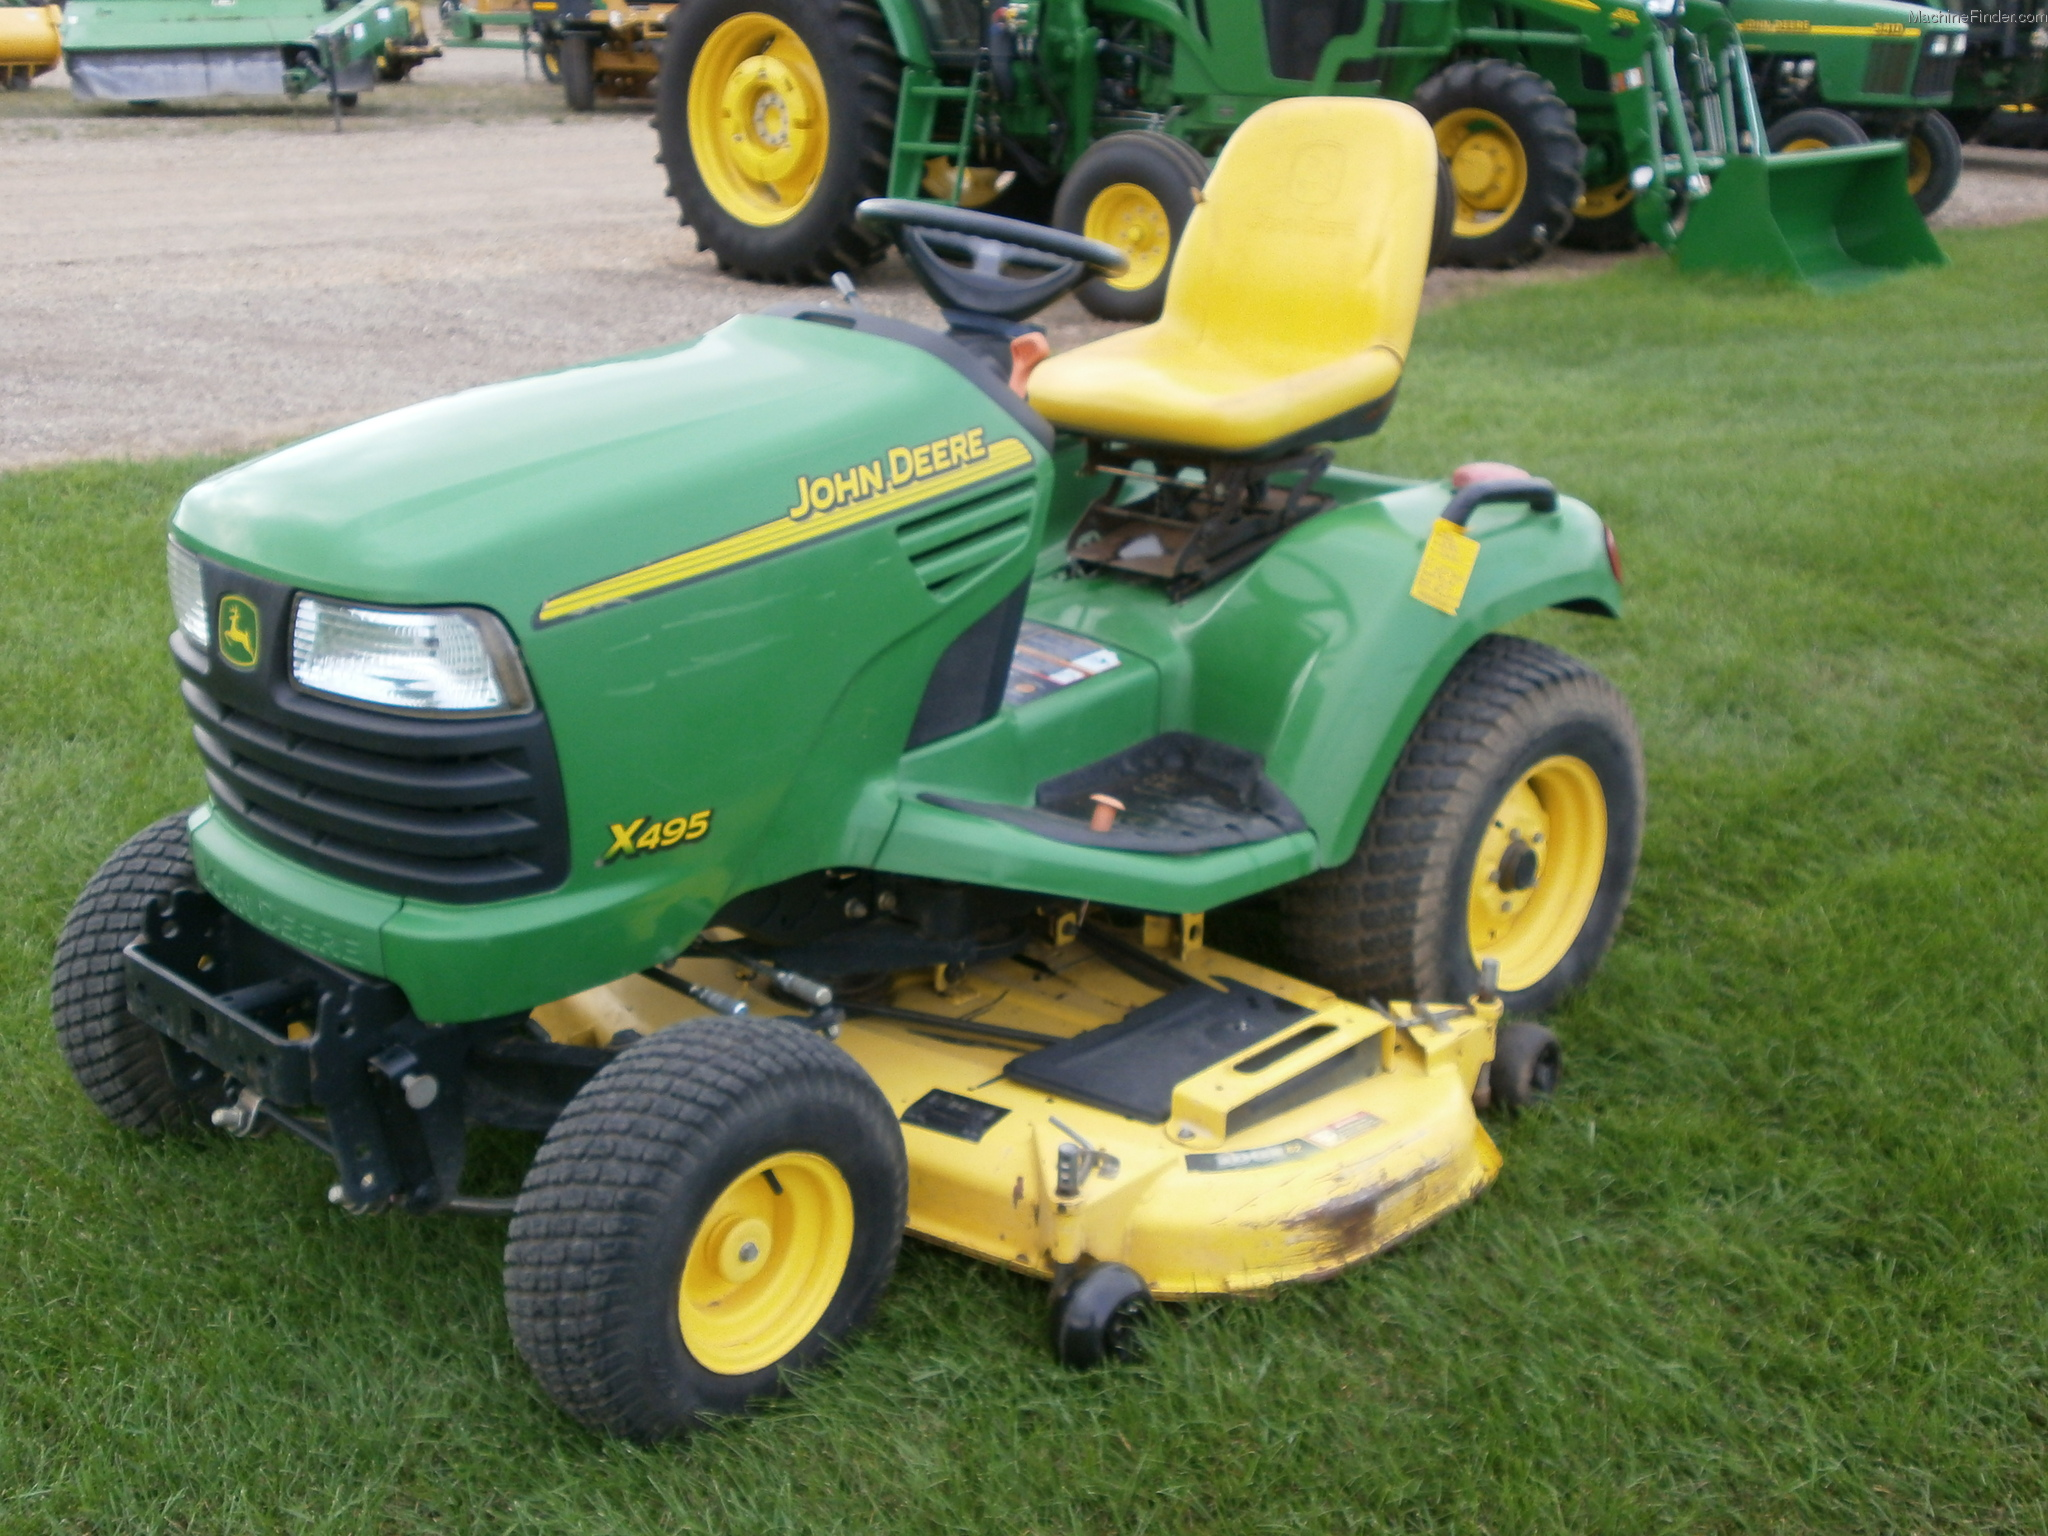 John Deere X495 Aws Garden Tractor X Series Lawn Wiring Diagram 2005 And Commercial Mowing